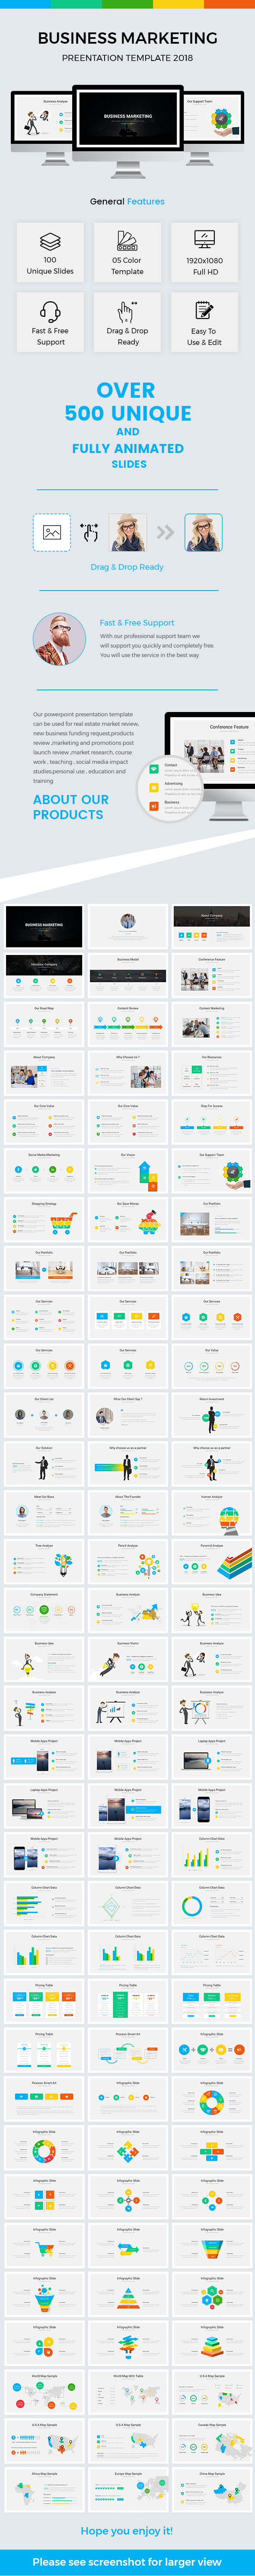 Business Marketing Powerpoint Template 2018 - Business PowerPoint Templates